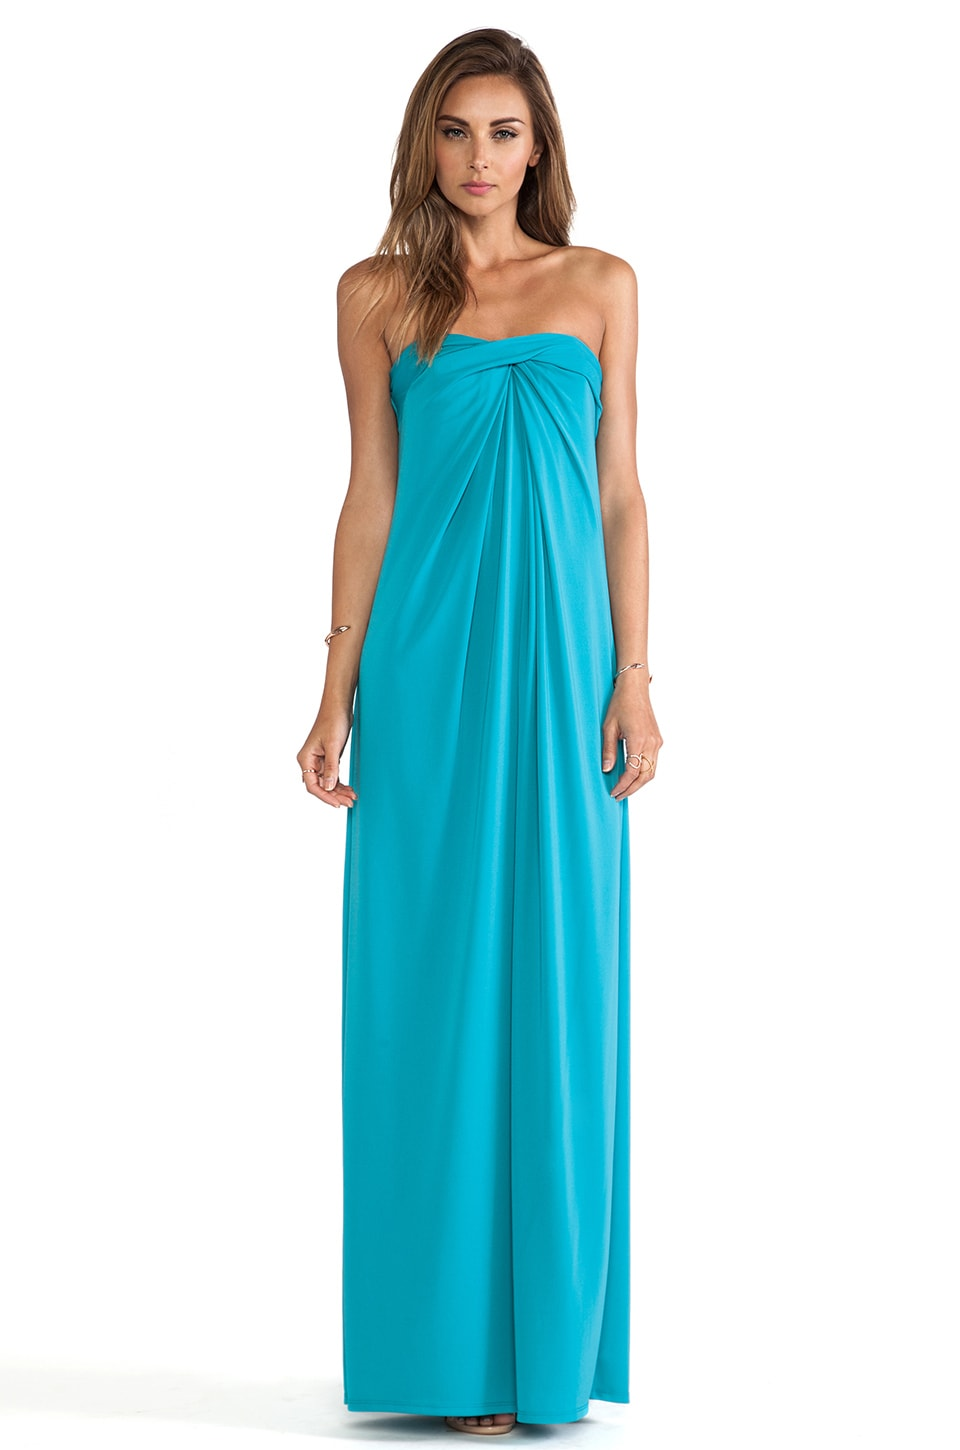 Halston Heritage Strapless Structured Dress with Flare Skirt in Caribbean